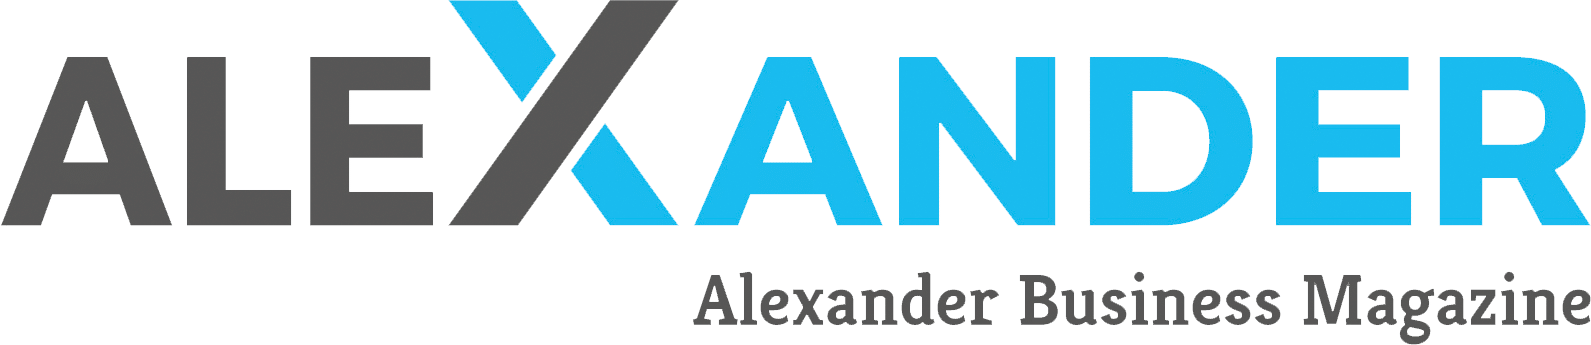 logo alexander business magazine